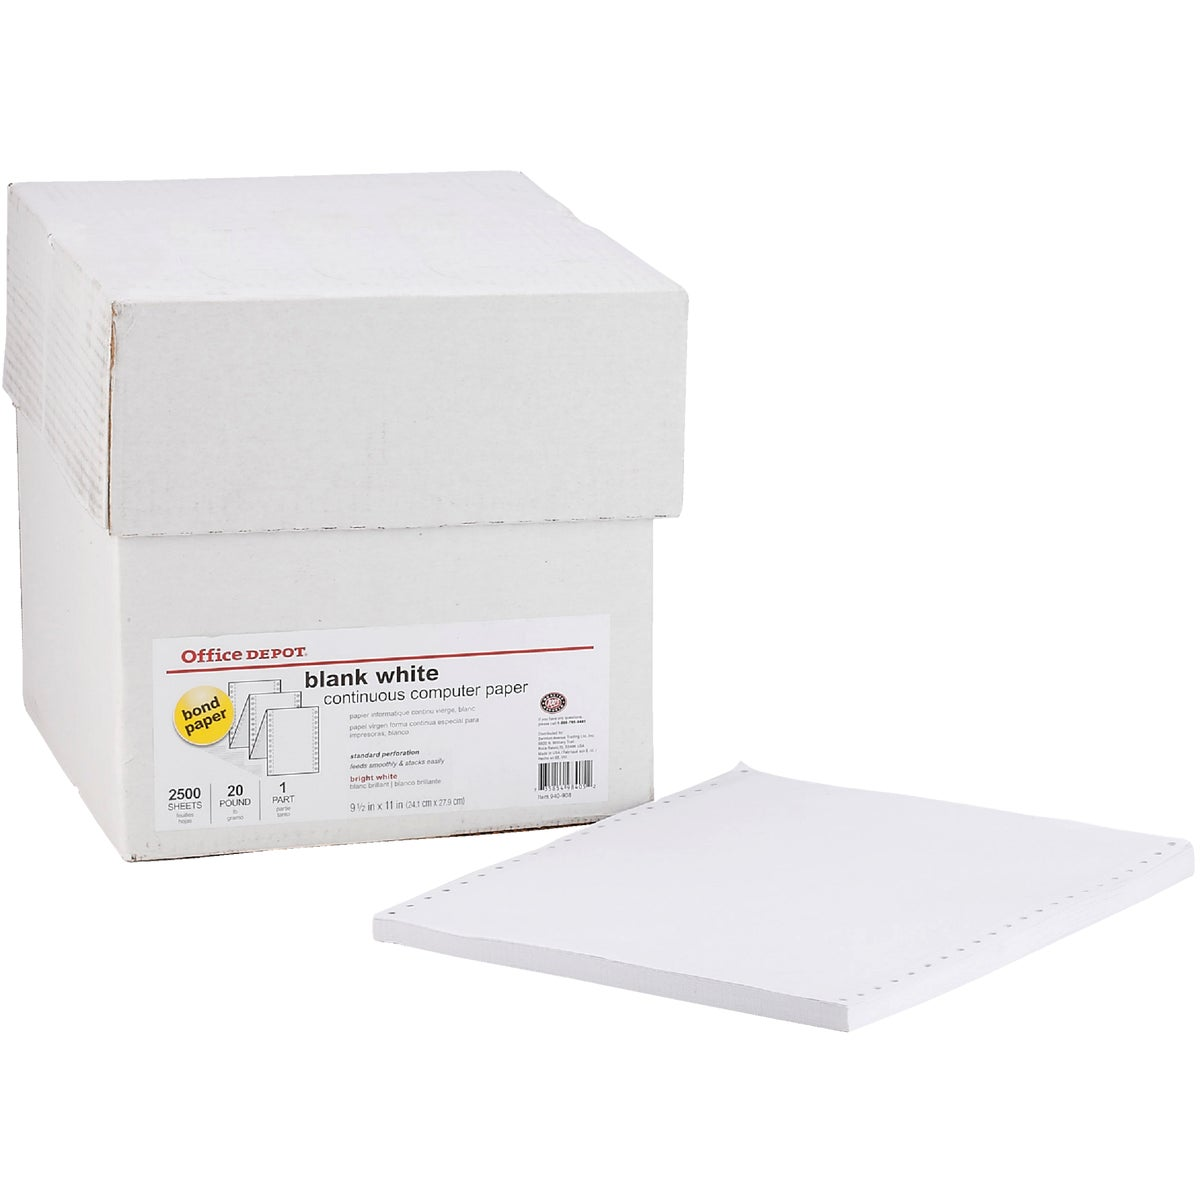 20# BLANK COMPUTER PAPER - 177154 by Staples